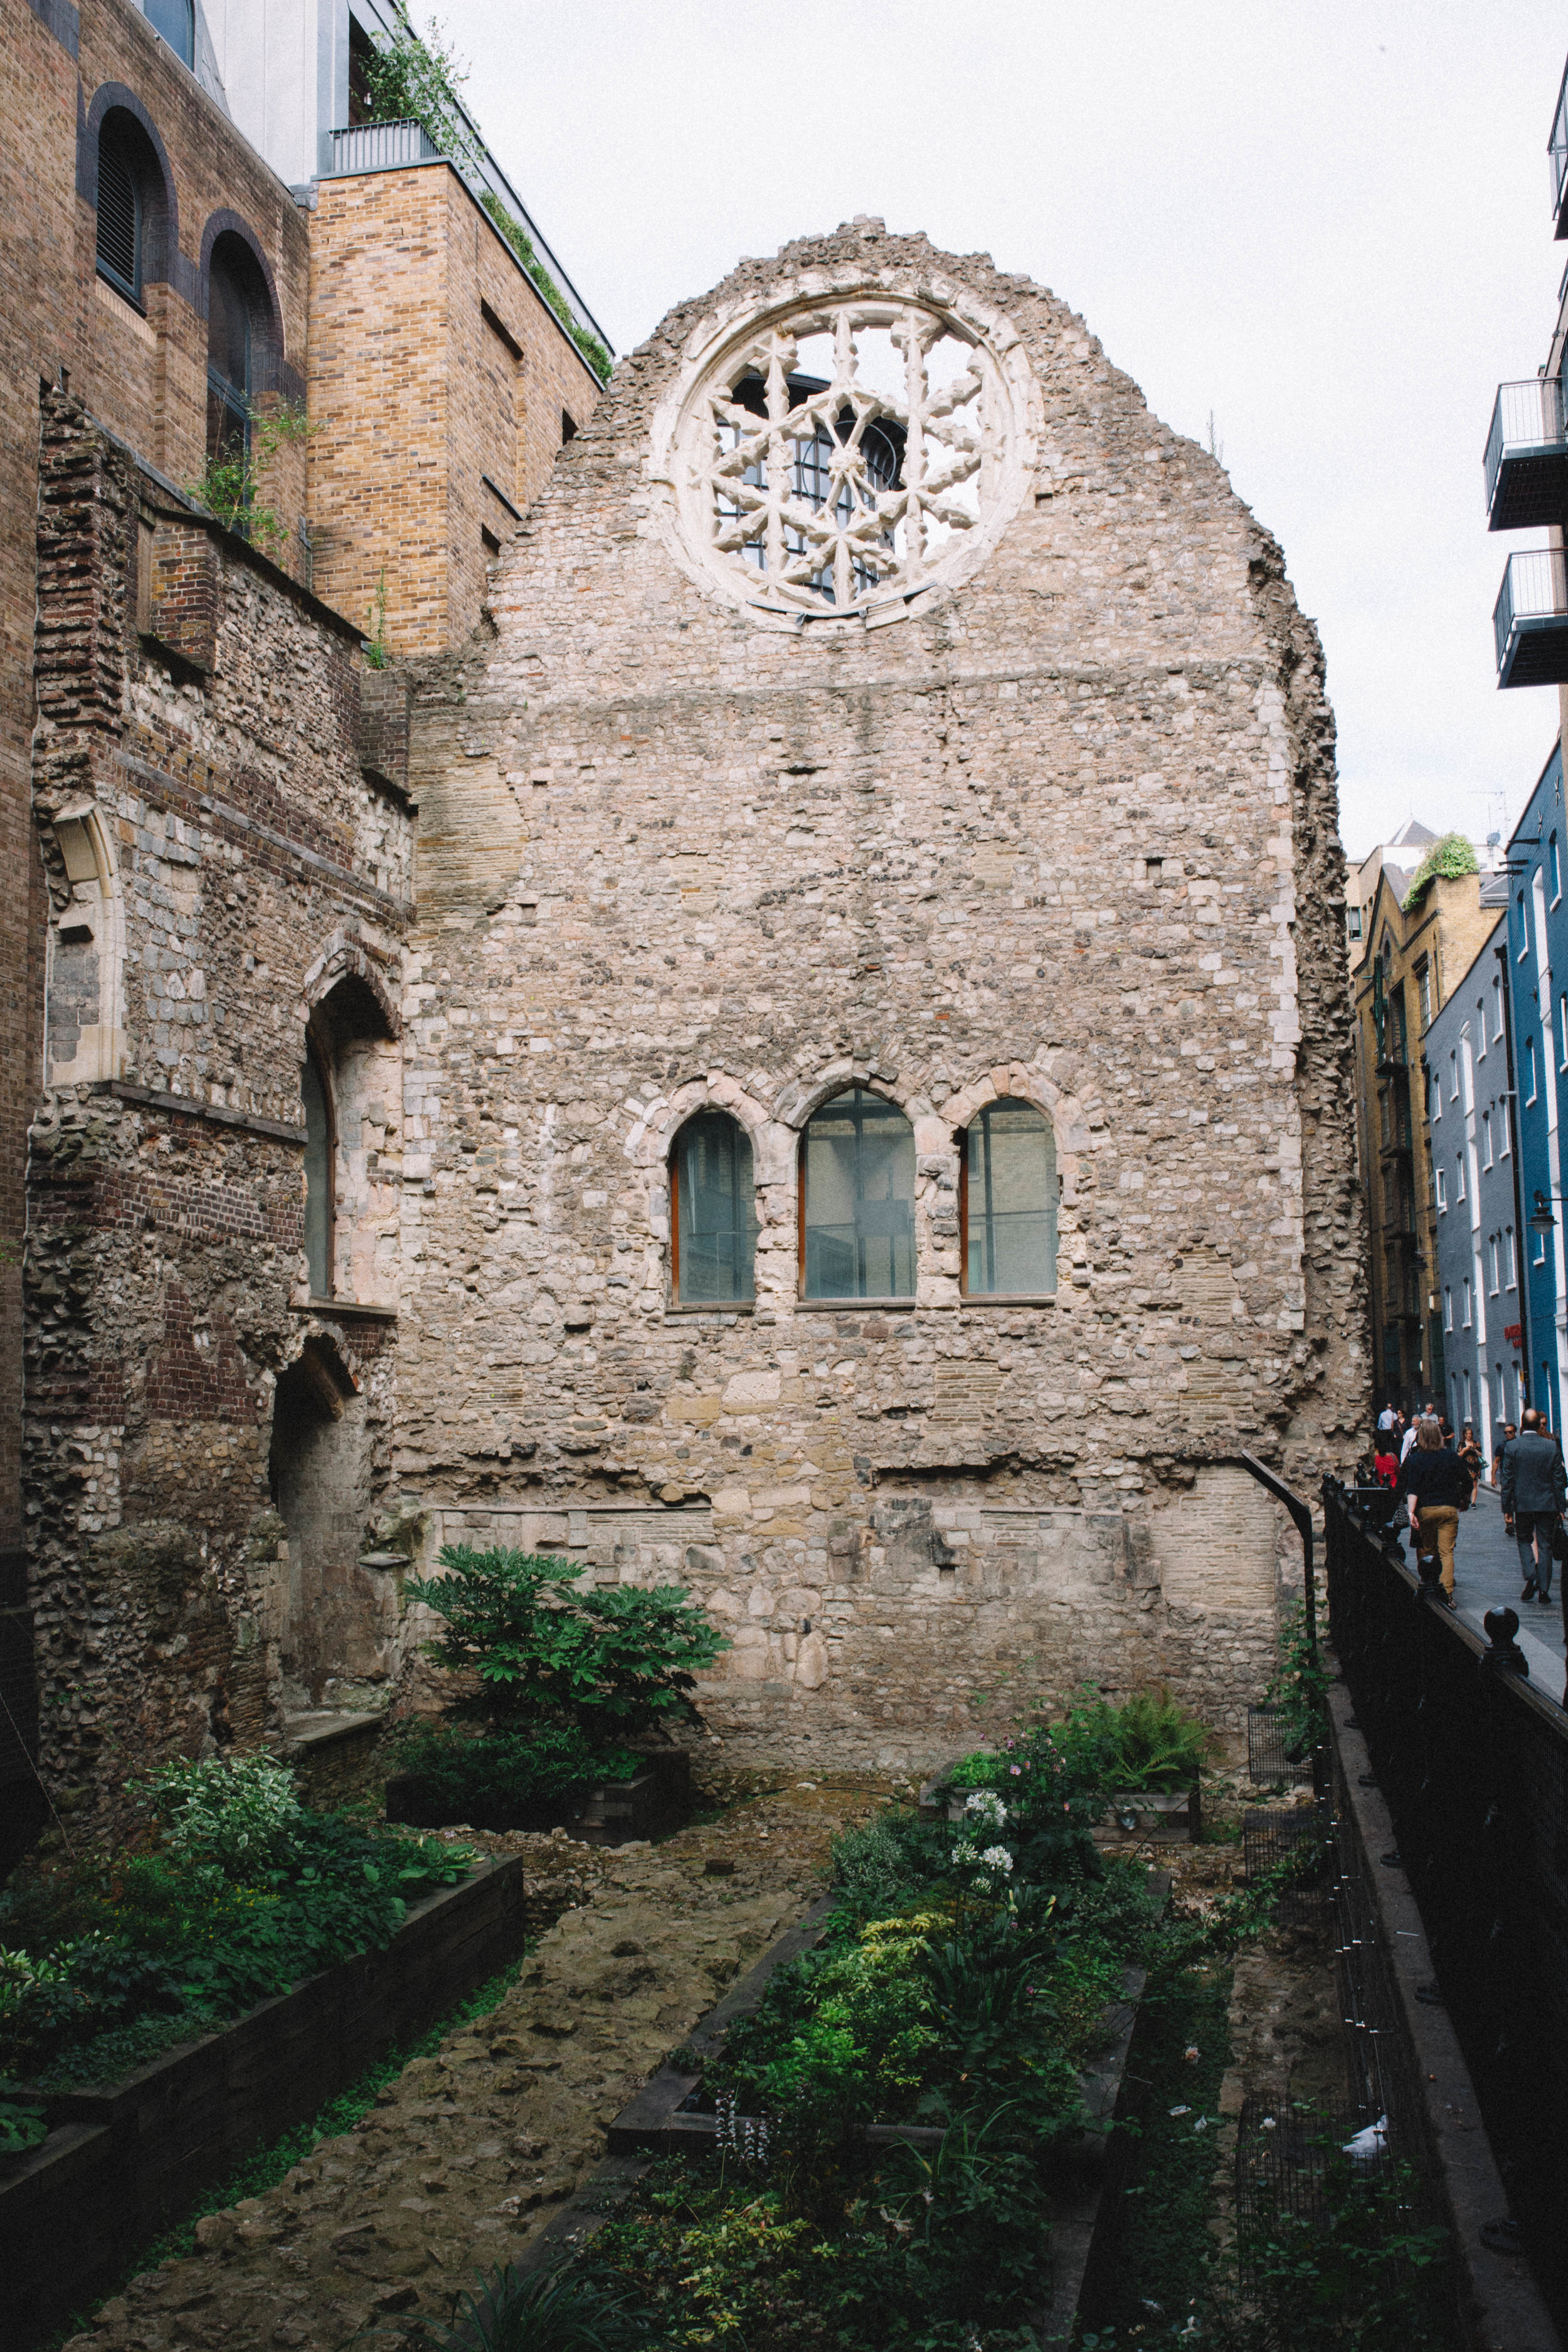 Ruins from somewhere around the 12th century, still standing in London